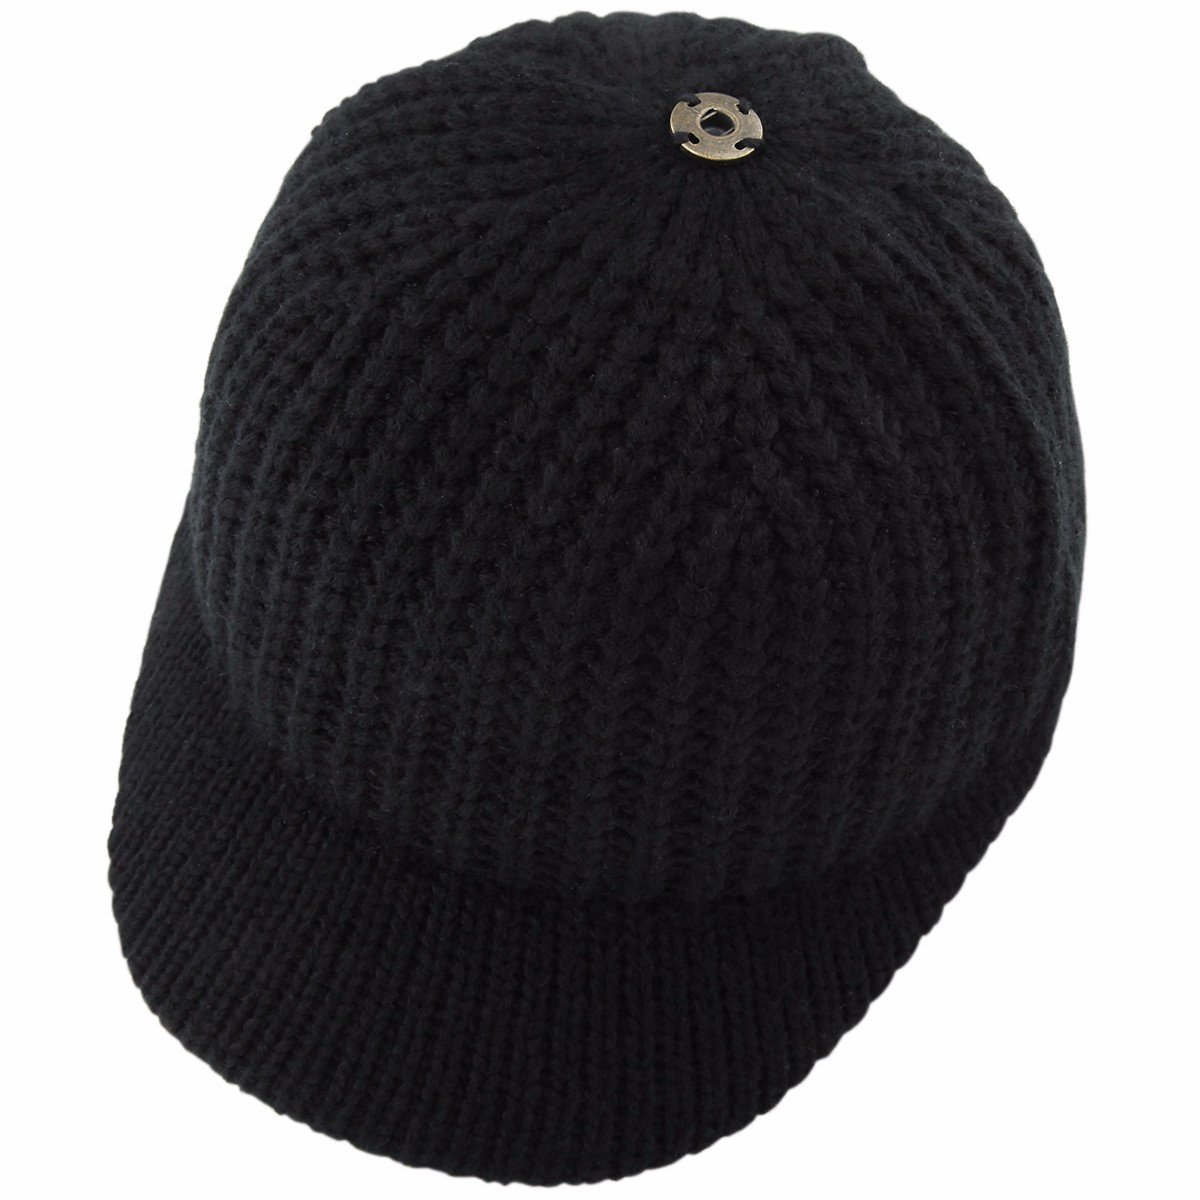 c44d6af2f Samtree Women's Beanie Hat with Visor,Winter Warm Slouchy Knitted Baseball  Cap